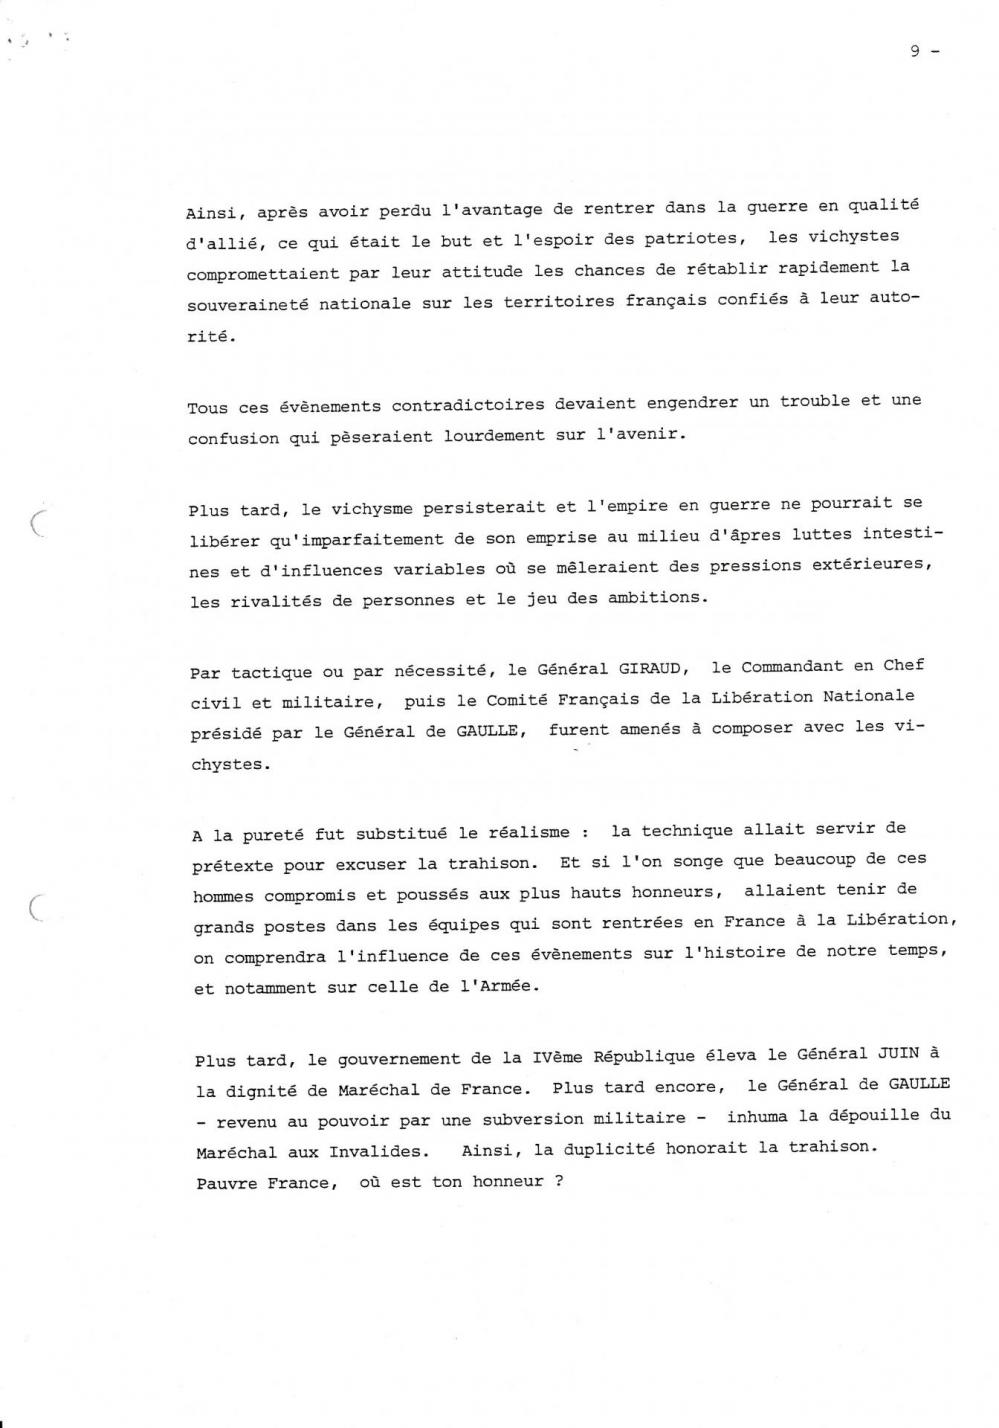 General jousse page9